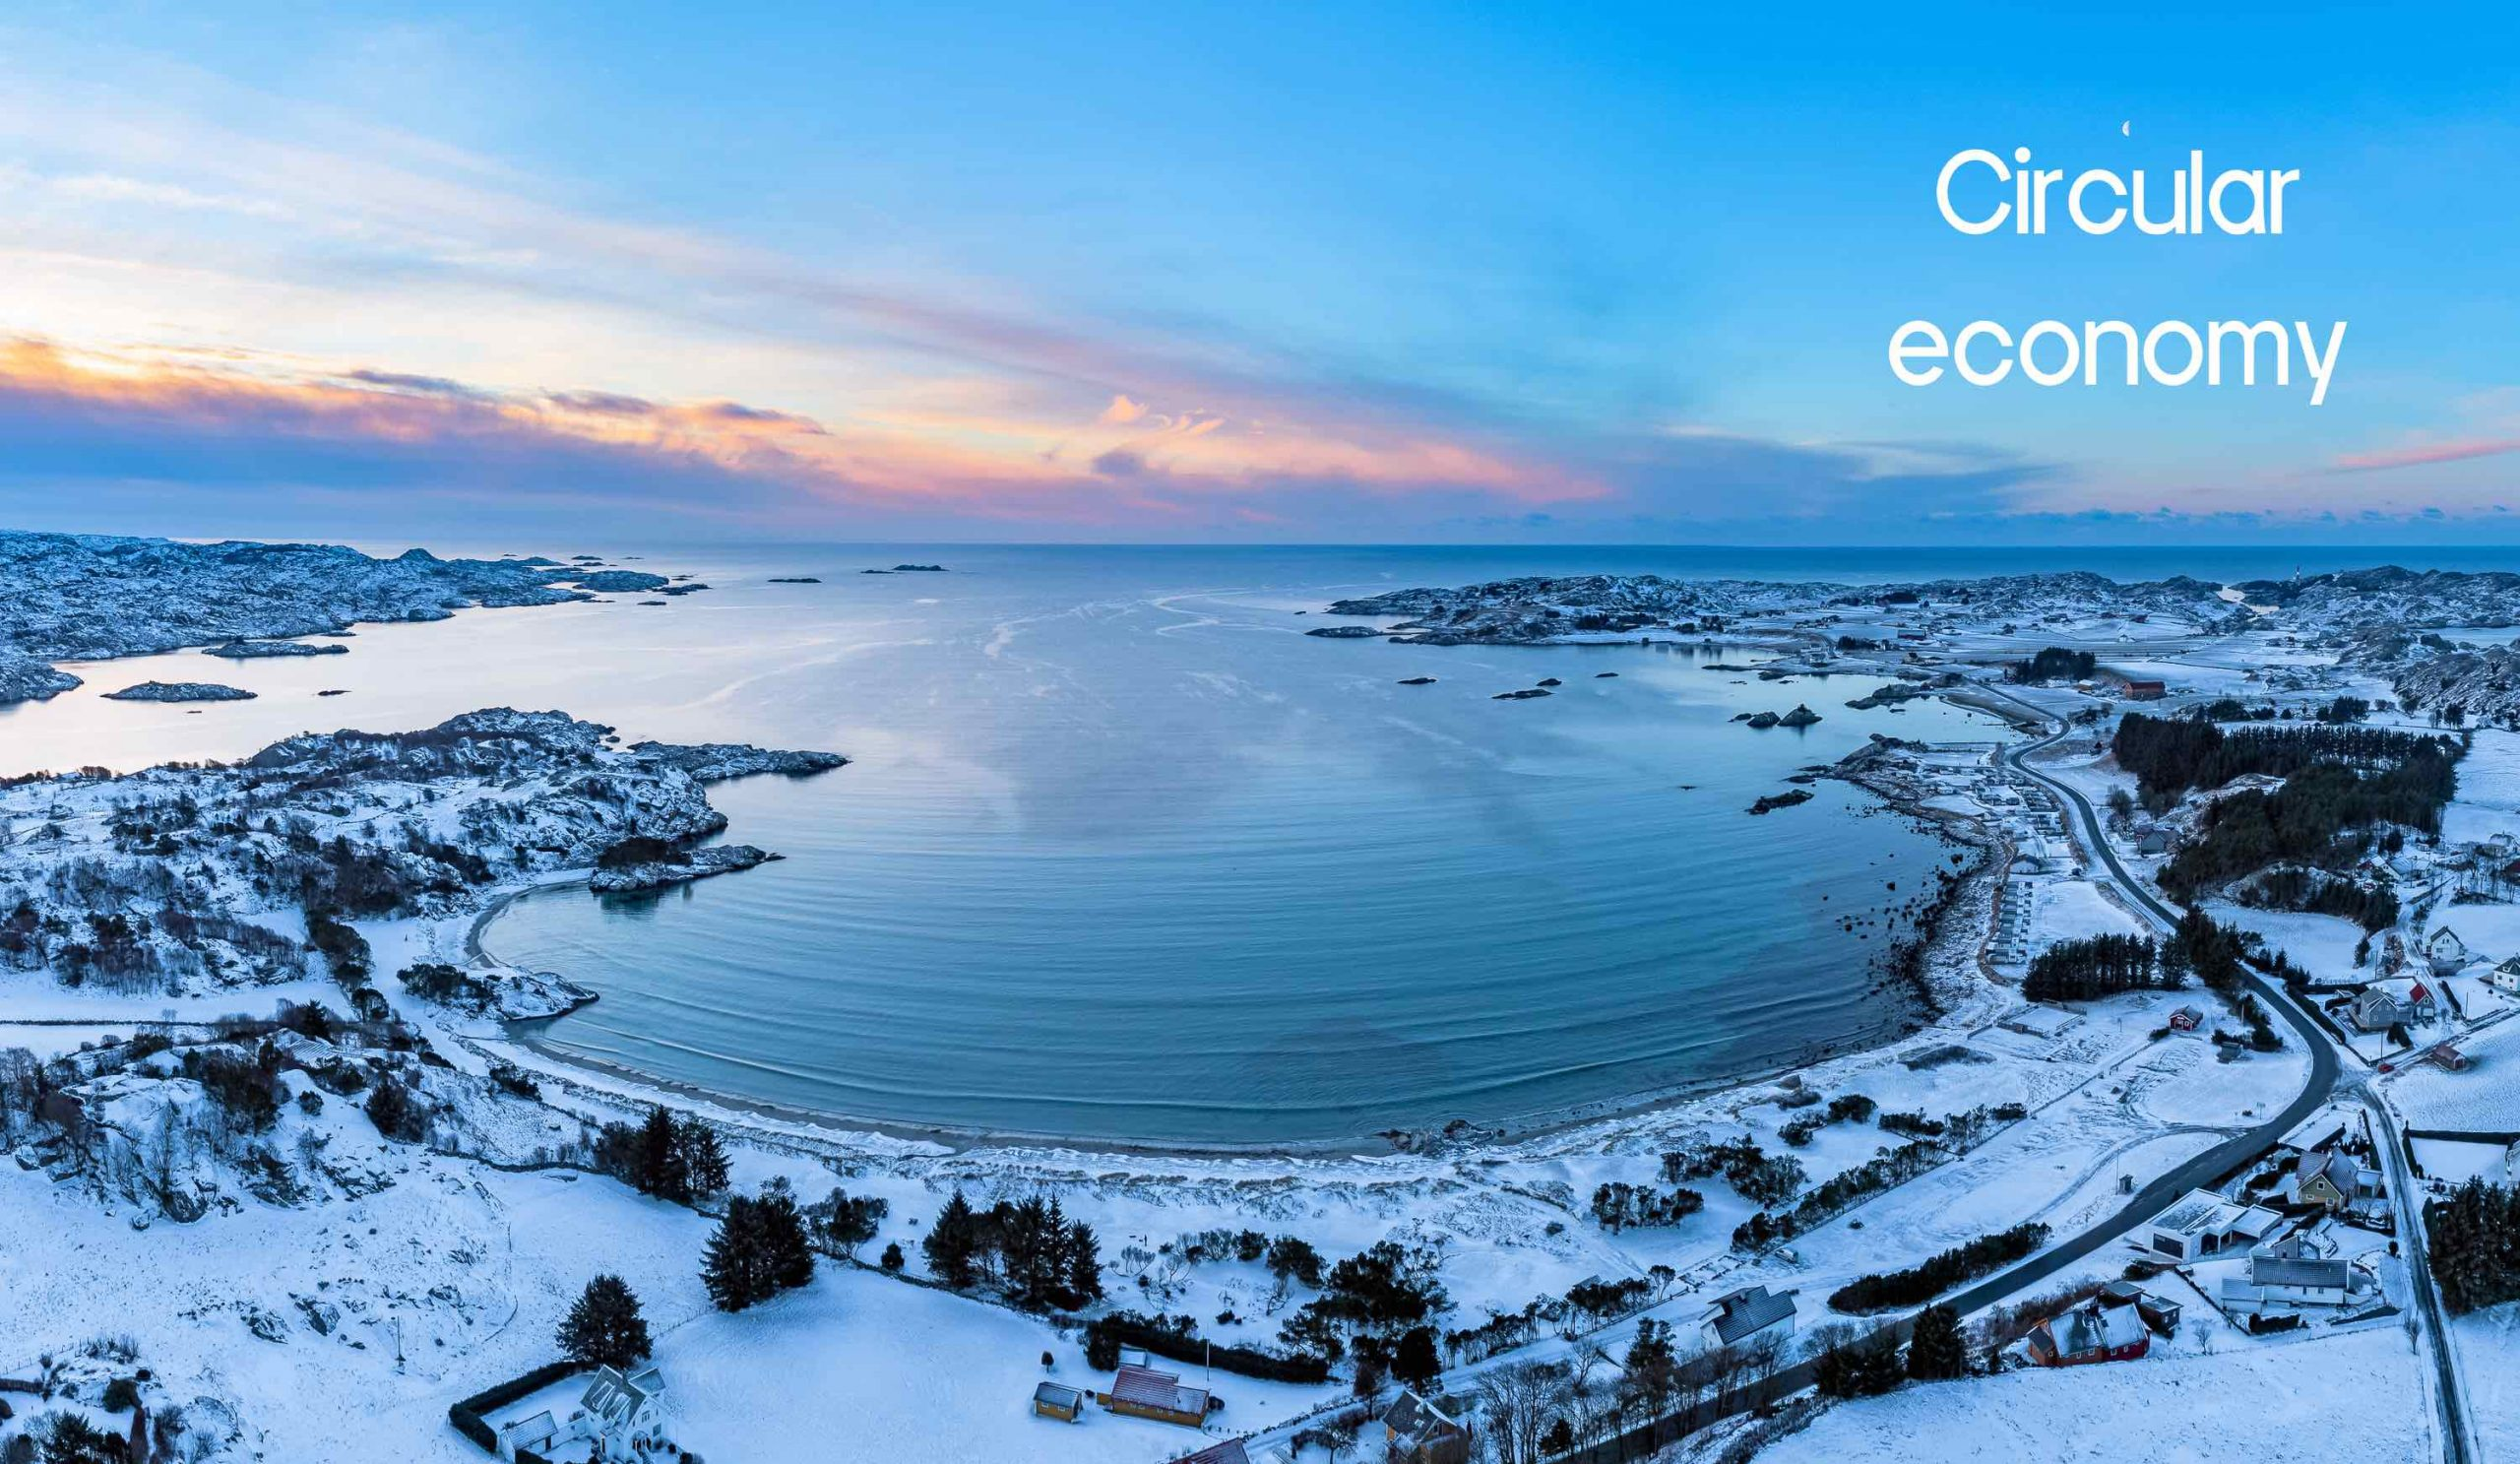 Circular economy is at the heart of what we do at Eikund.